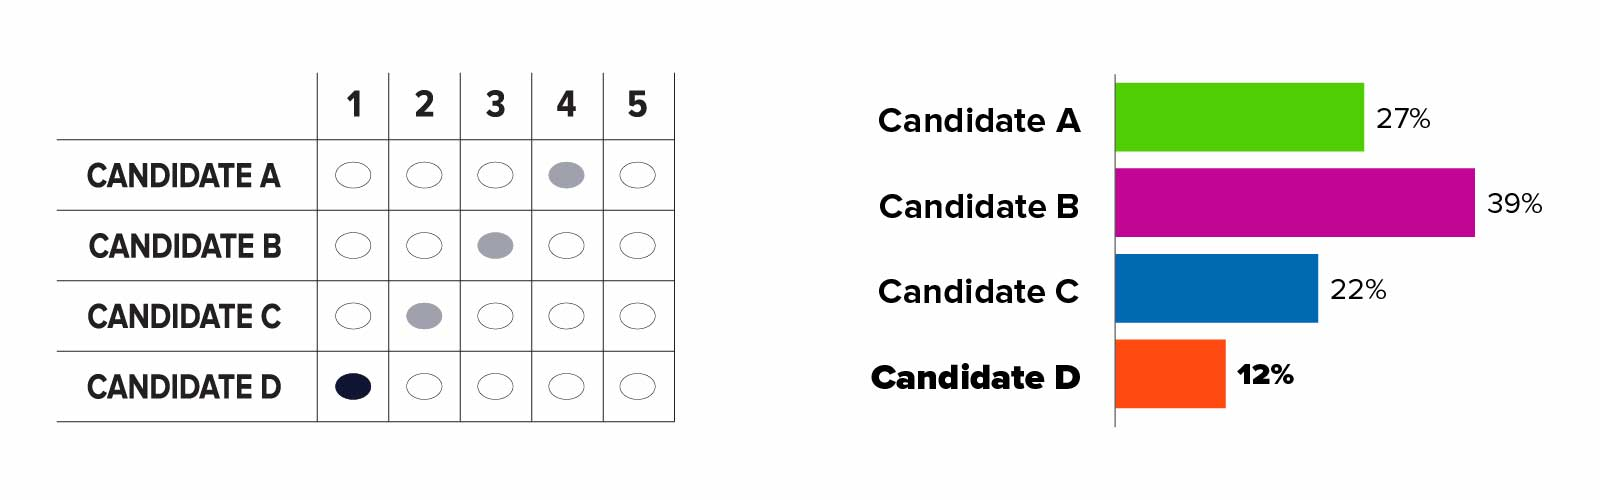 On left: A correctly marked RCV grid ballot where candidate A through D appears in rows and number 1 through 5 appears in columns. Candidate D is ranked 1, Candidate C is ranked 2, Candidate B is ranked 3, and Candidate A is ranked 4. The oval for Candidate D who is ranked 1 is darker than the other ovals. On right: Bar chart displaying the results of first-choice vote totals. Candidate A is shown in green and has 27 percent of percent of first-choice votes. Candidate B is shown in purple and has 39 percent. Candidate C is shown in blue and has 22 percent. Candidate D is shown in orange and has 12 percent. Candidate D has the fewest votes in this round.